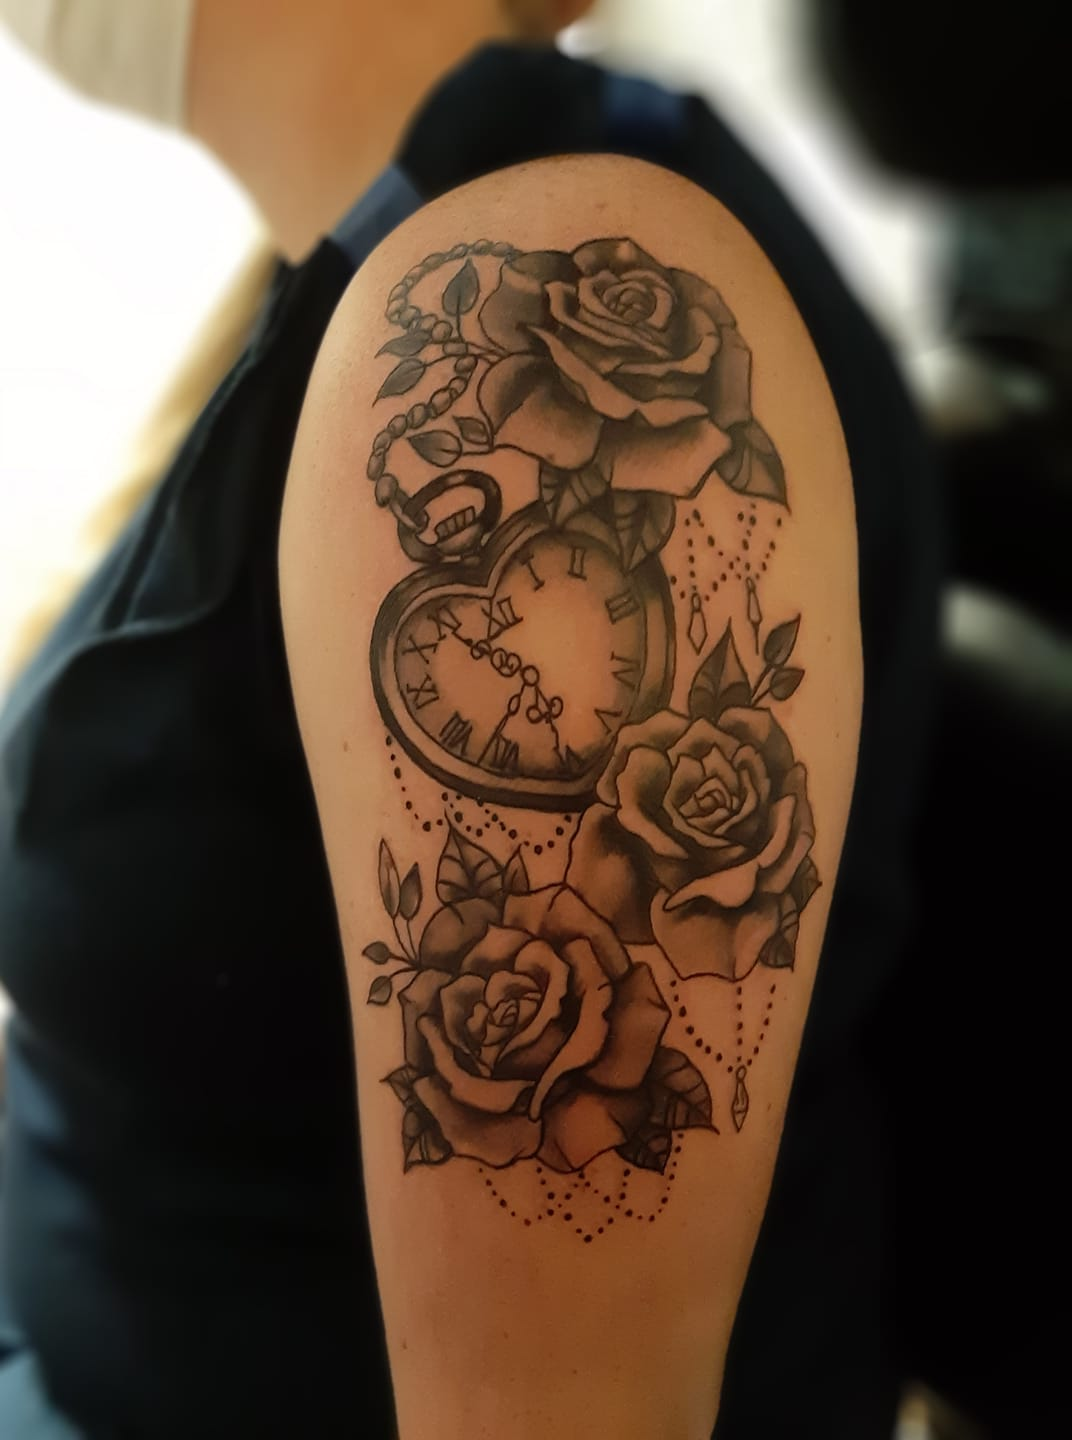 Timepiece and roses